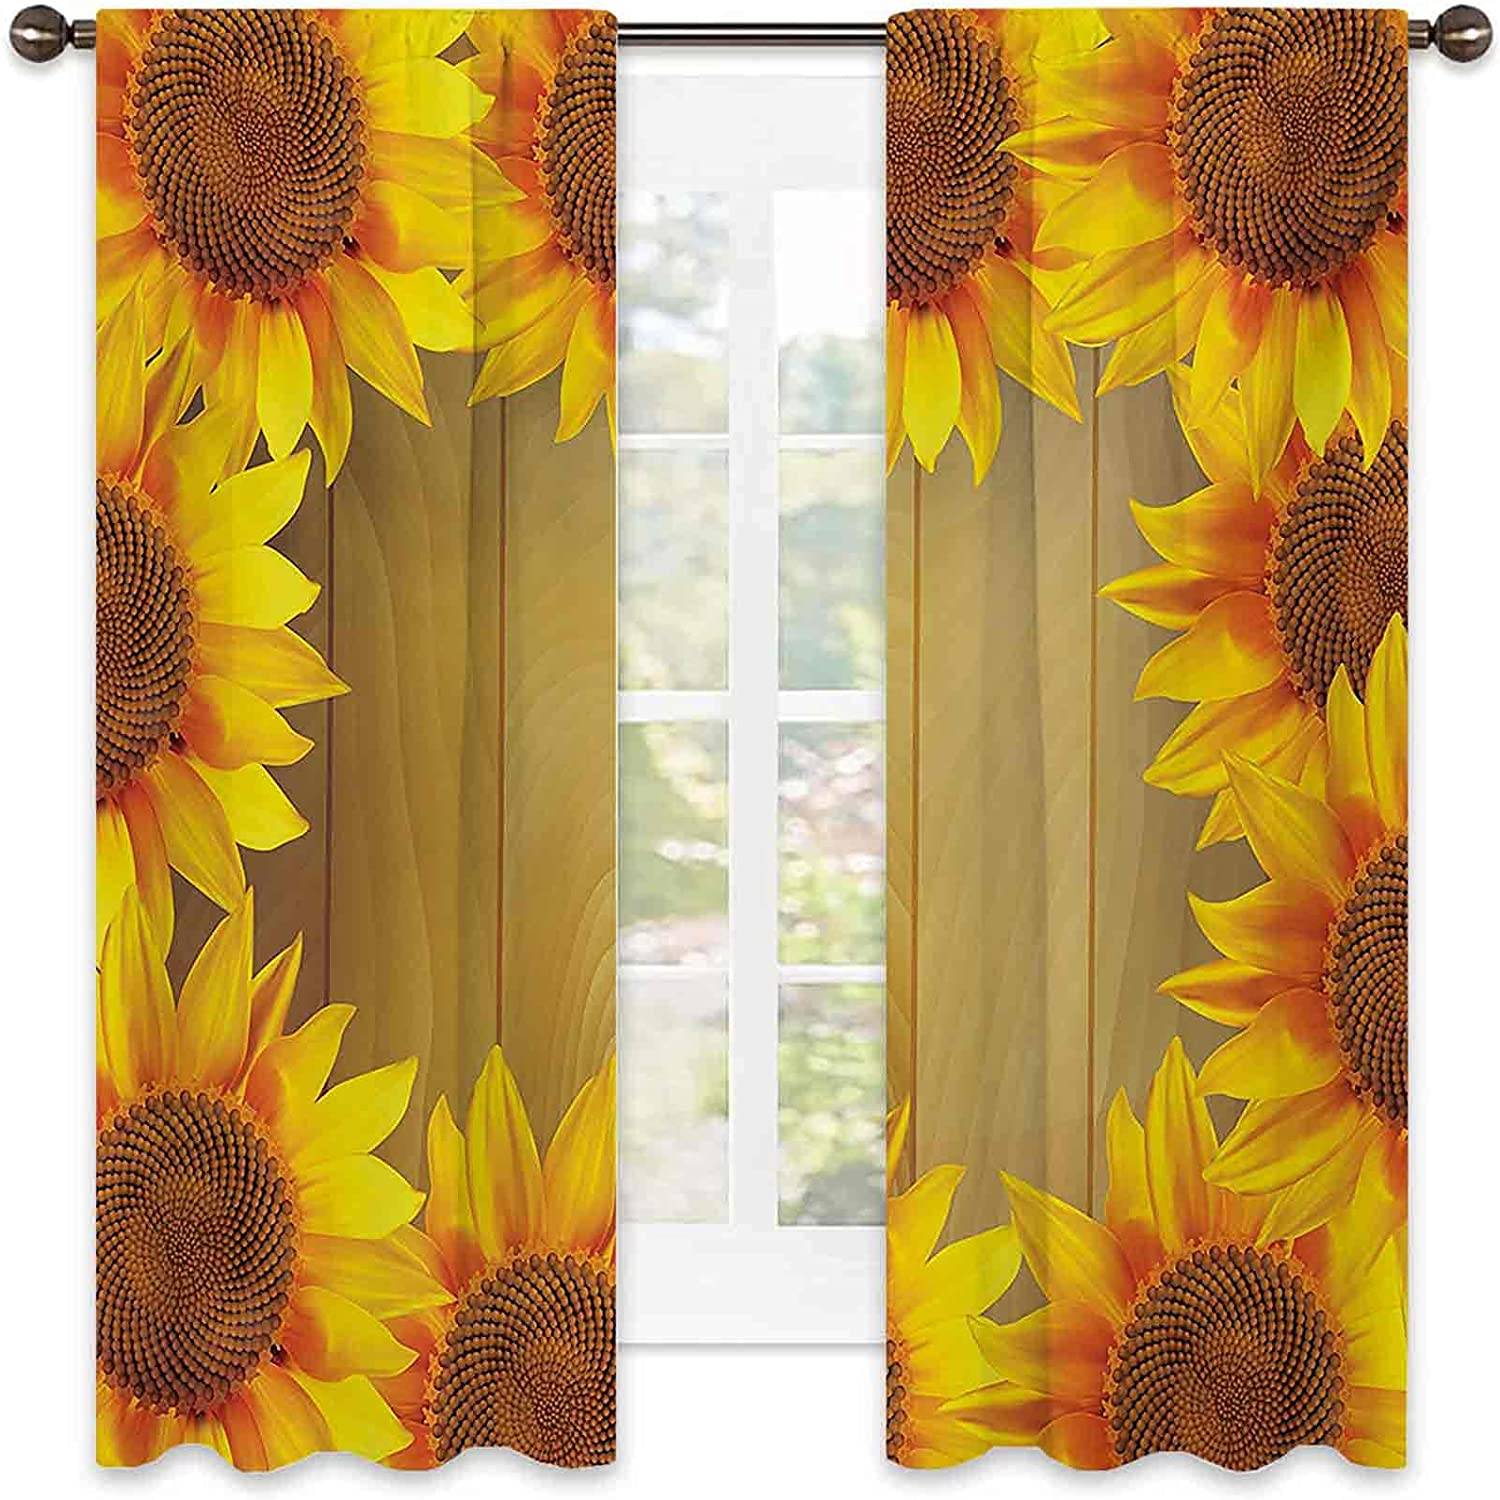 Sunflower Heat Insulation Curtain Circl Arranged Max 77% OFF in Popular product A